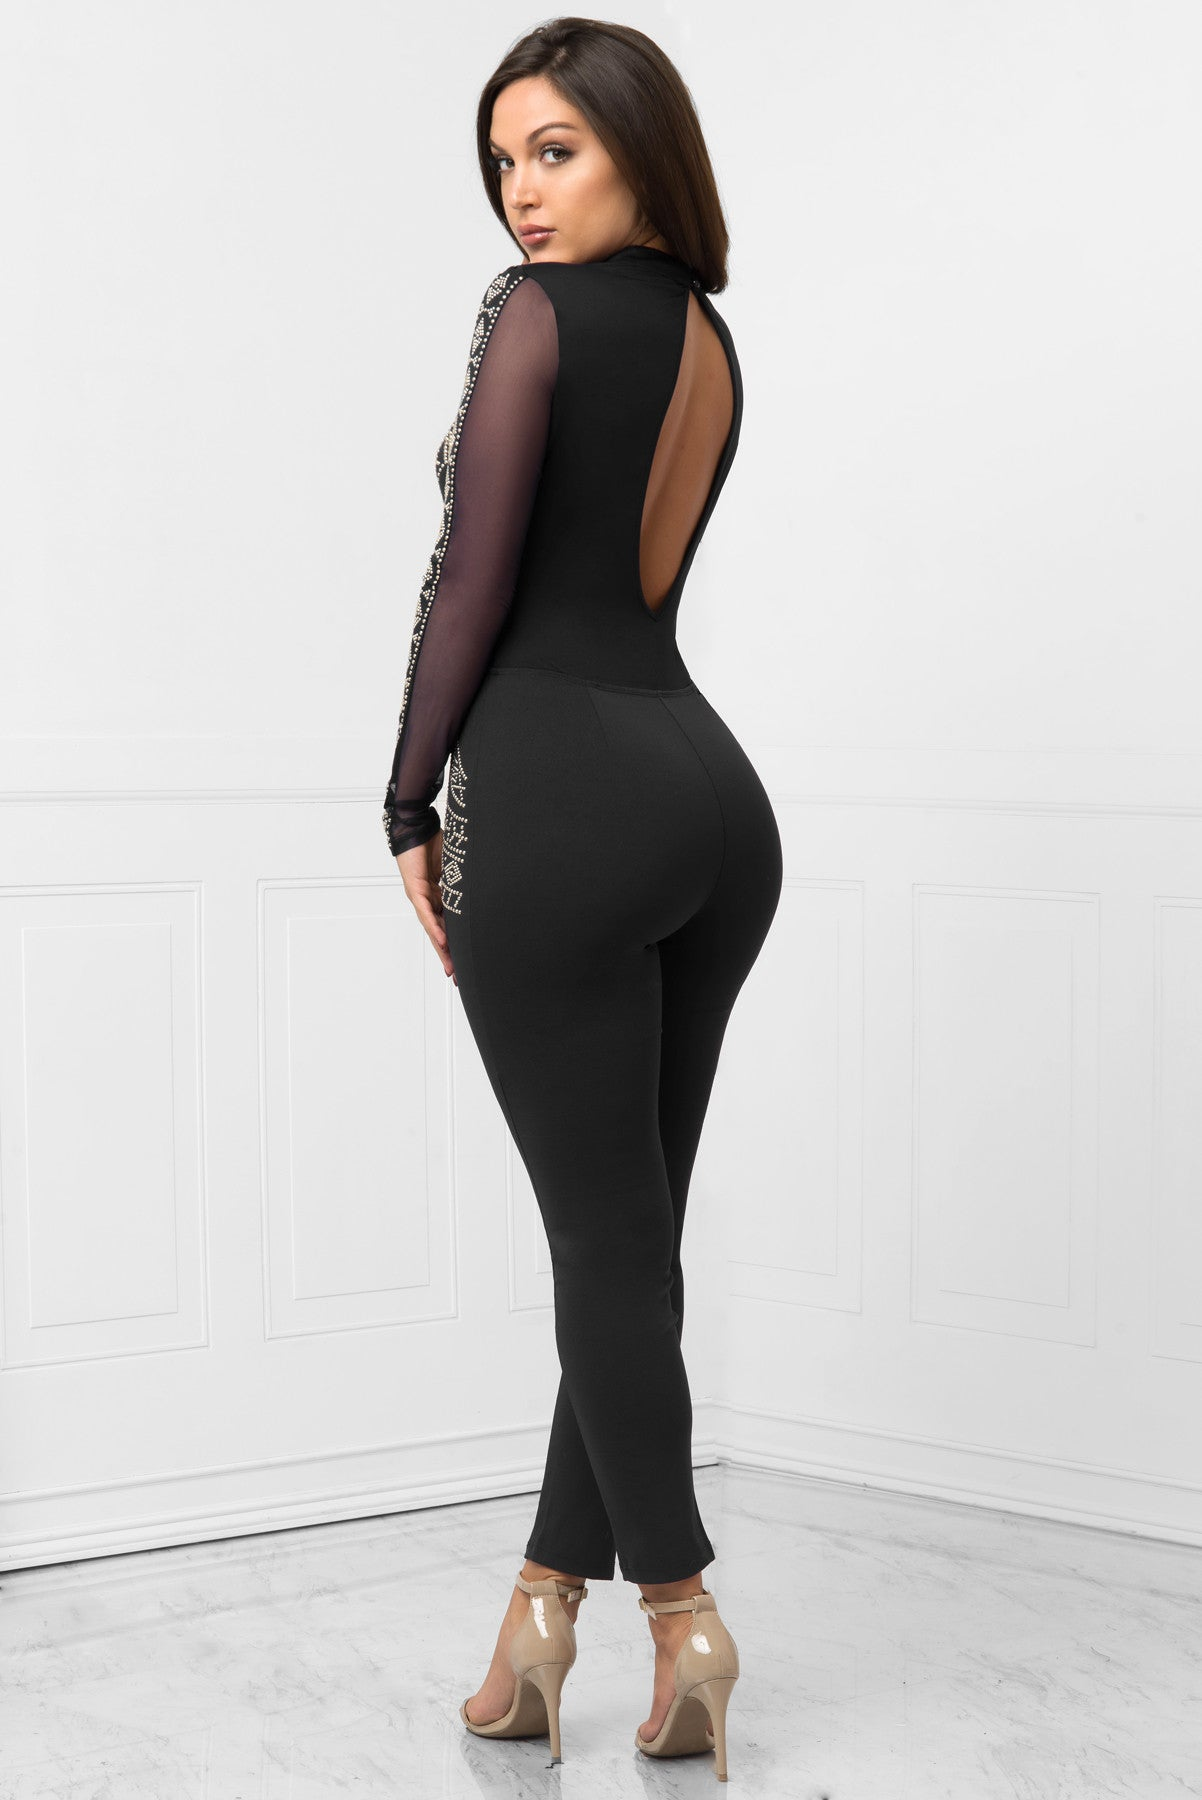 RESTOCK!! Nicki Jumpsuit Black - Fashion Effect Store  - 3